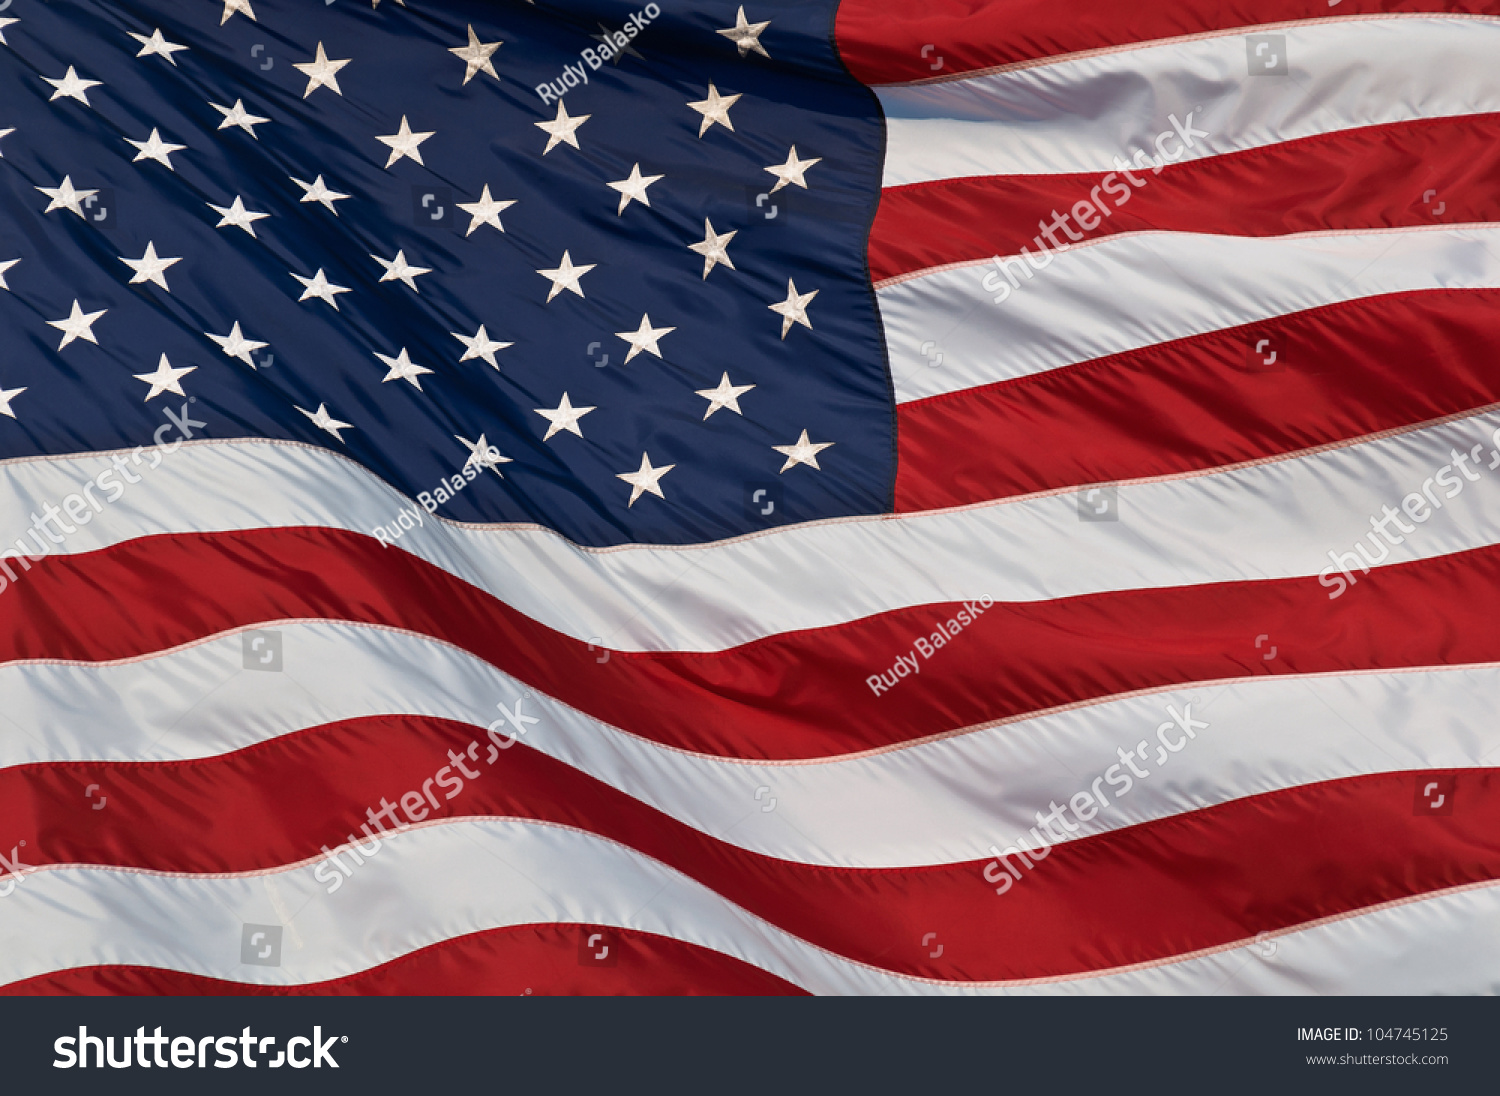 United States Of America Flag Image Of The American Flag